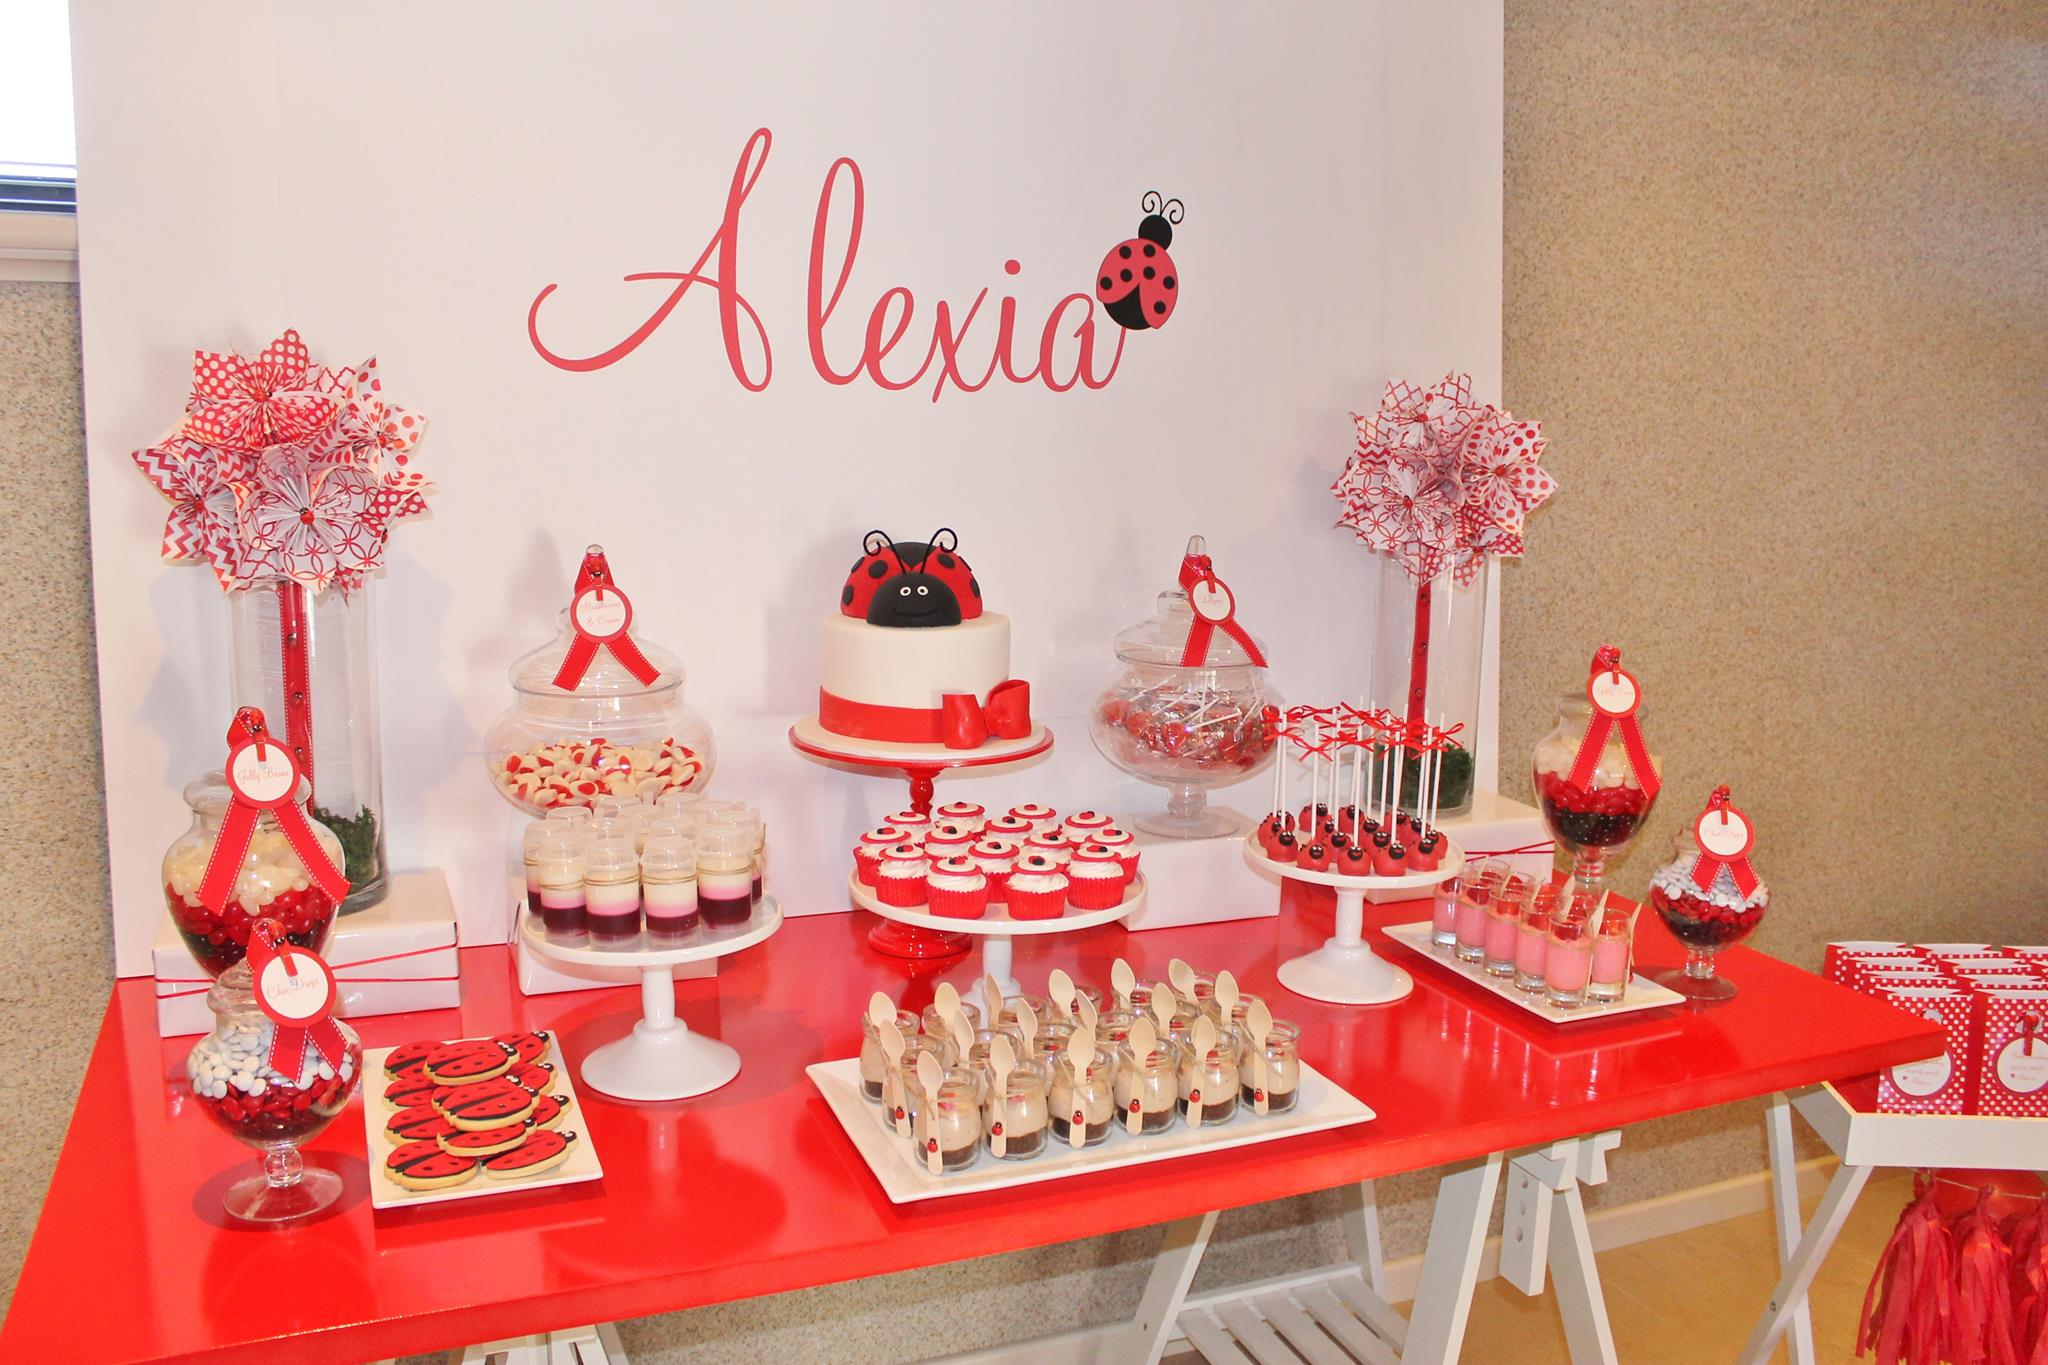 Ladybug party setup and desserts - The Sweet Cart (WA)